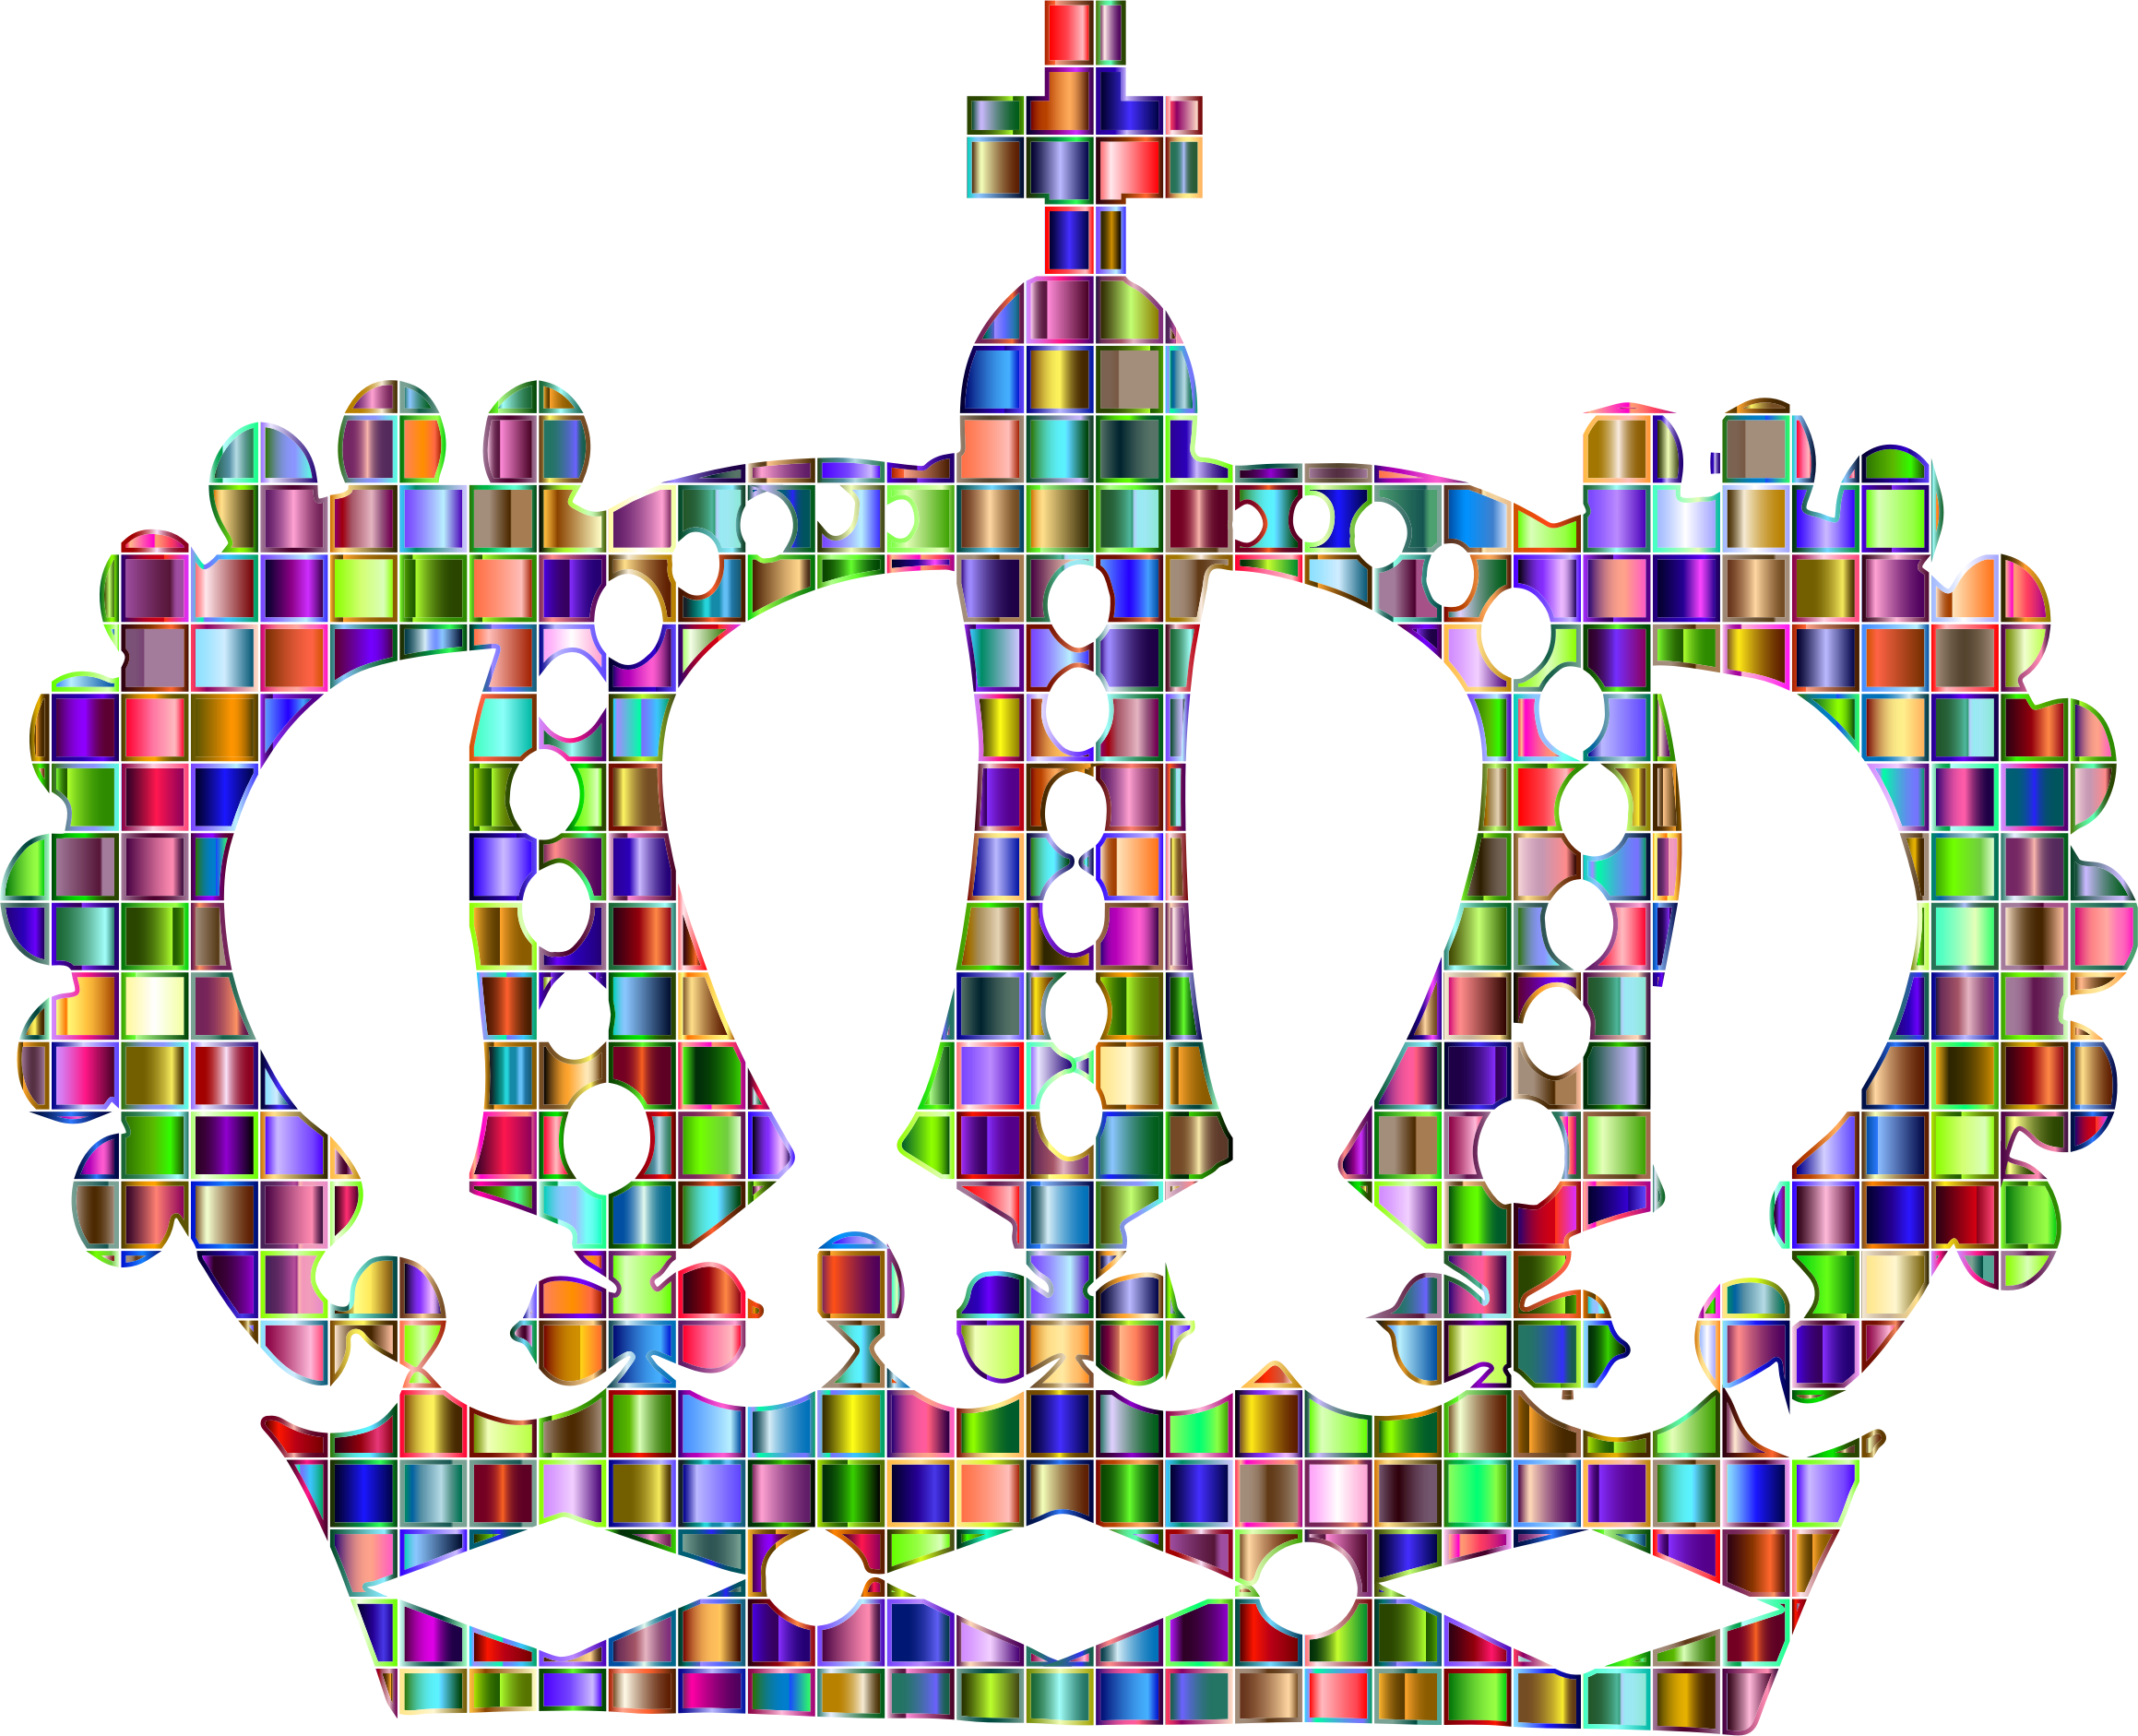 Clipart - Chromatic Mosaic Royal Crown clip art transparent library